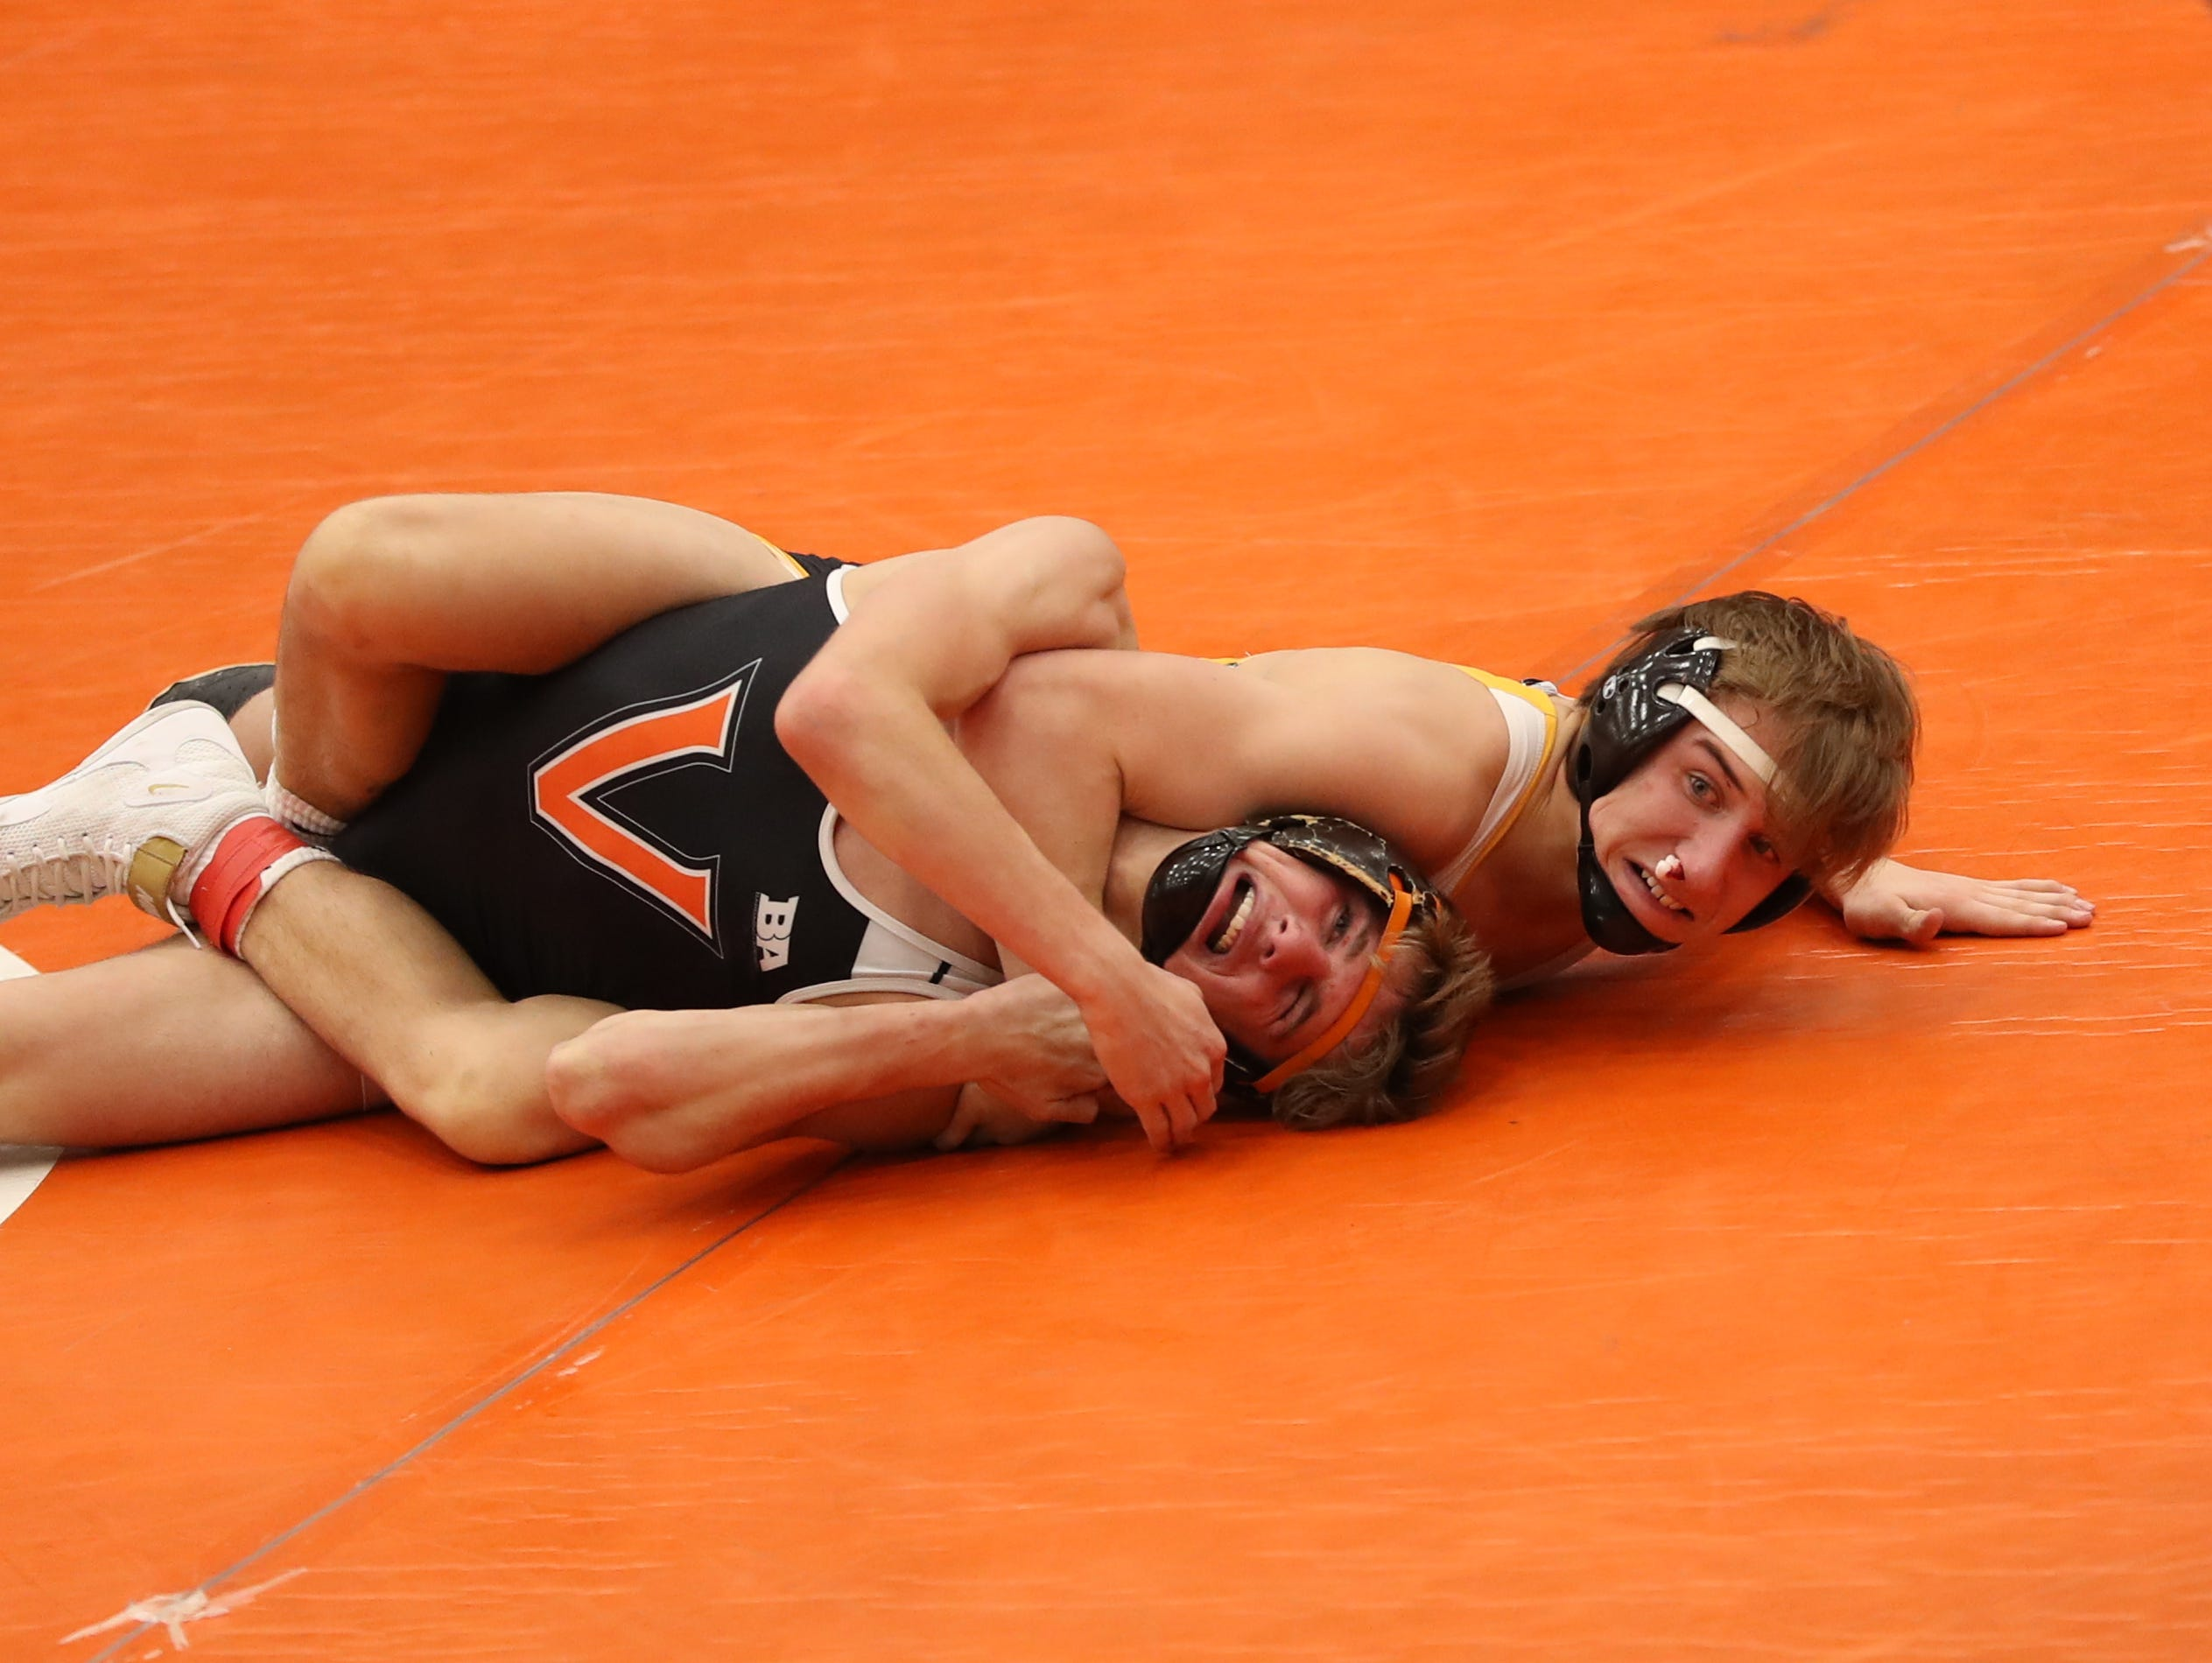 Southeast Polk's Carson Martinson pins Valley's Noah Micka at Valley High School in West Des Moines on Jan. 17, 2019. The Rams beat the Tigers 53 to 20.